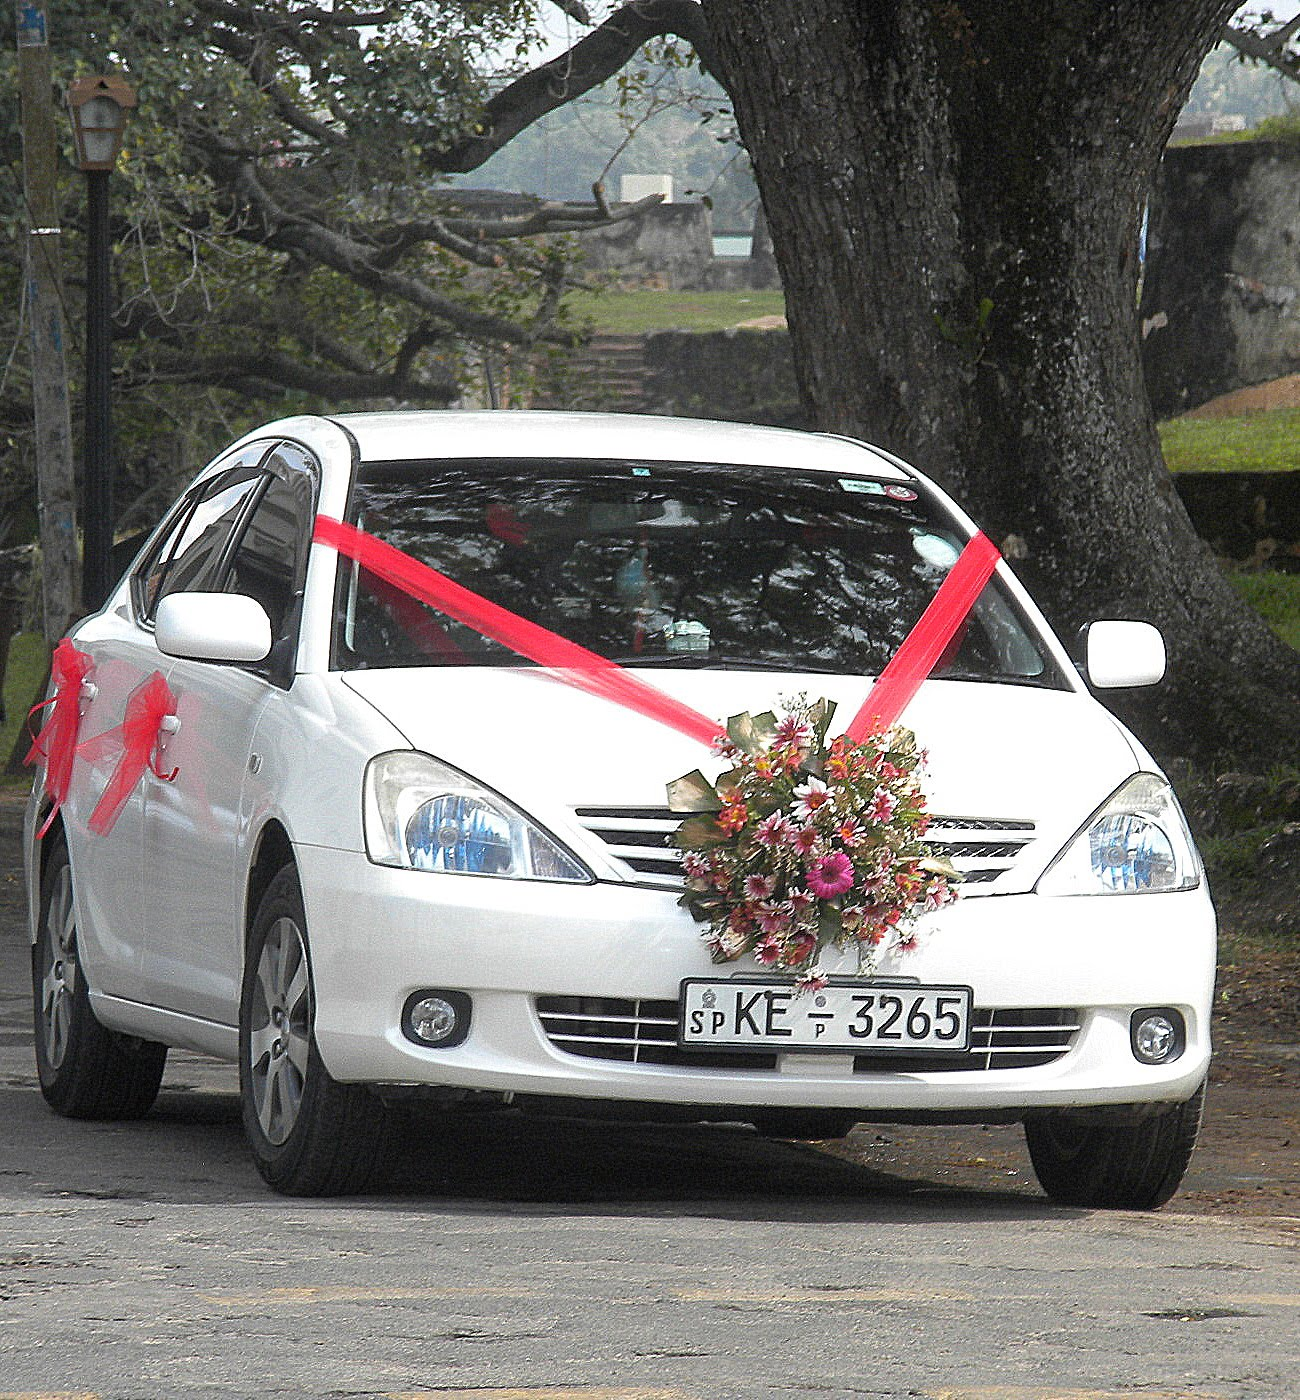 10 Best Wedding Cars Decorations 2014